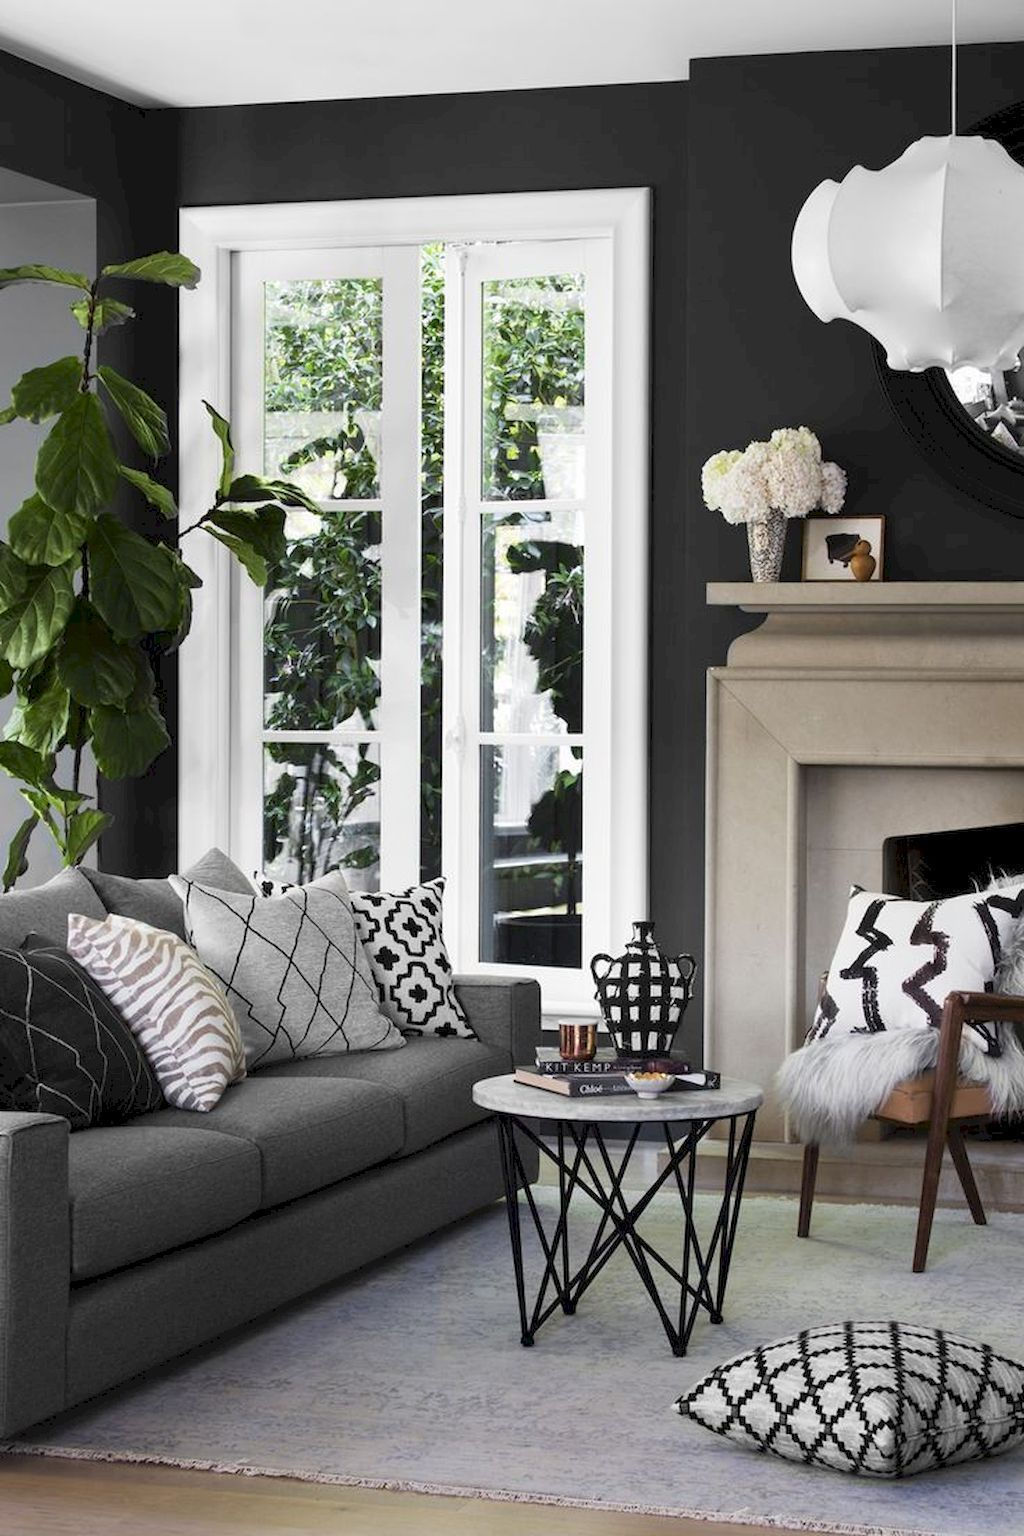 Best Interior Wall Color Ideas For 2019 Part 24 With Images